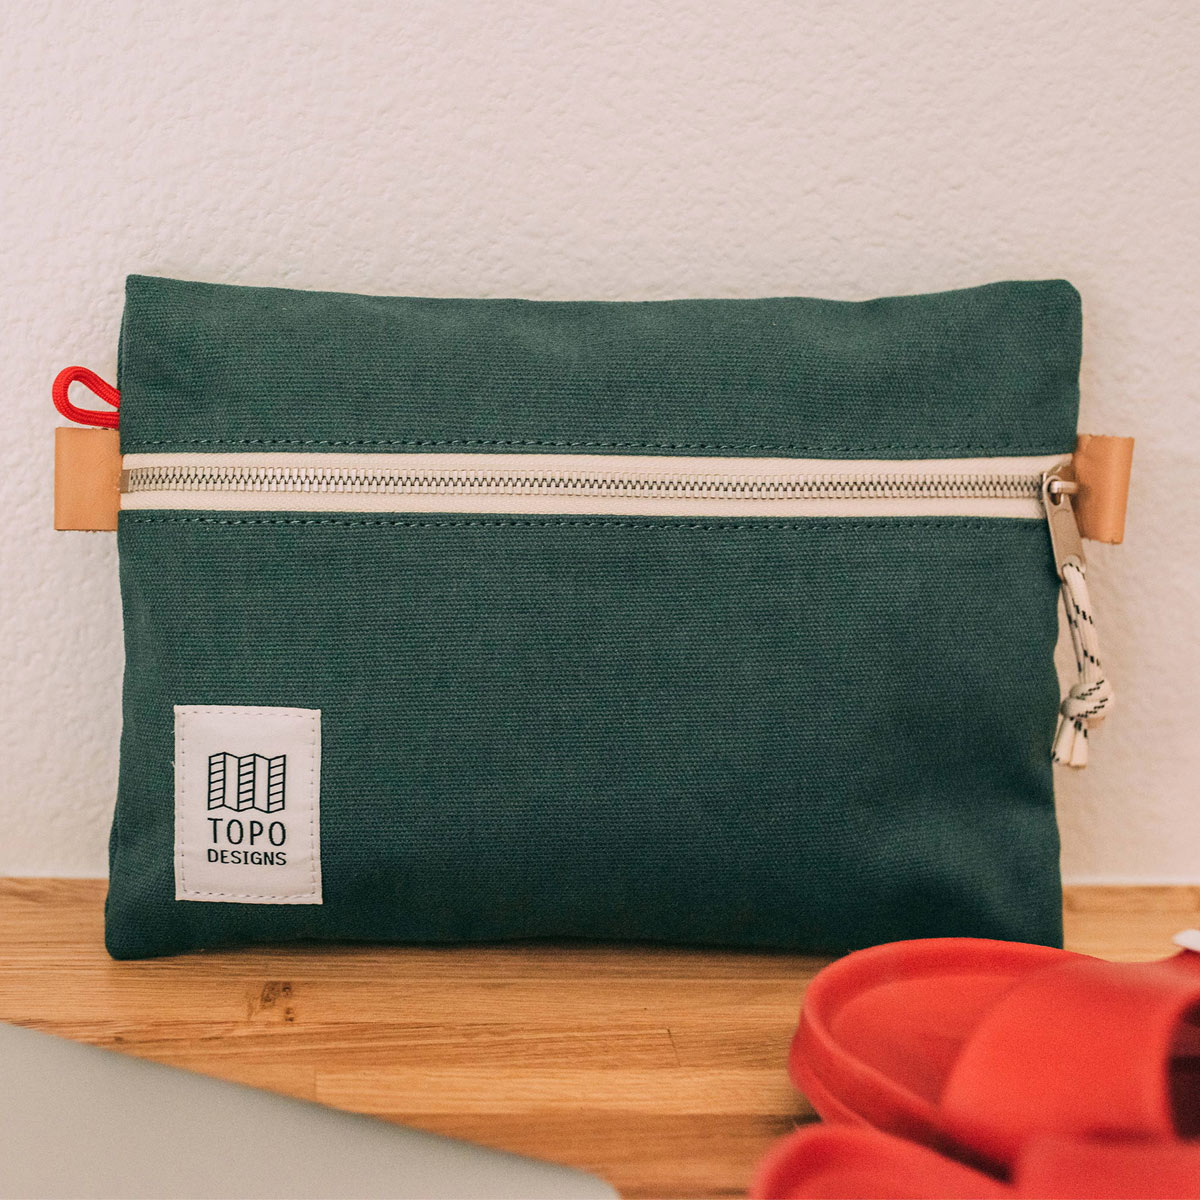 Topo Designs Accessory Bags Canvas Forest 3 Sizes, built for durability and organization